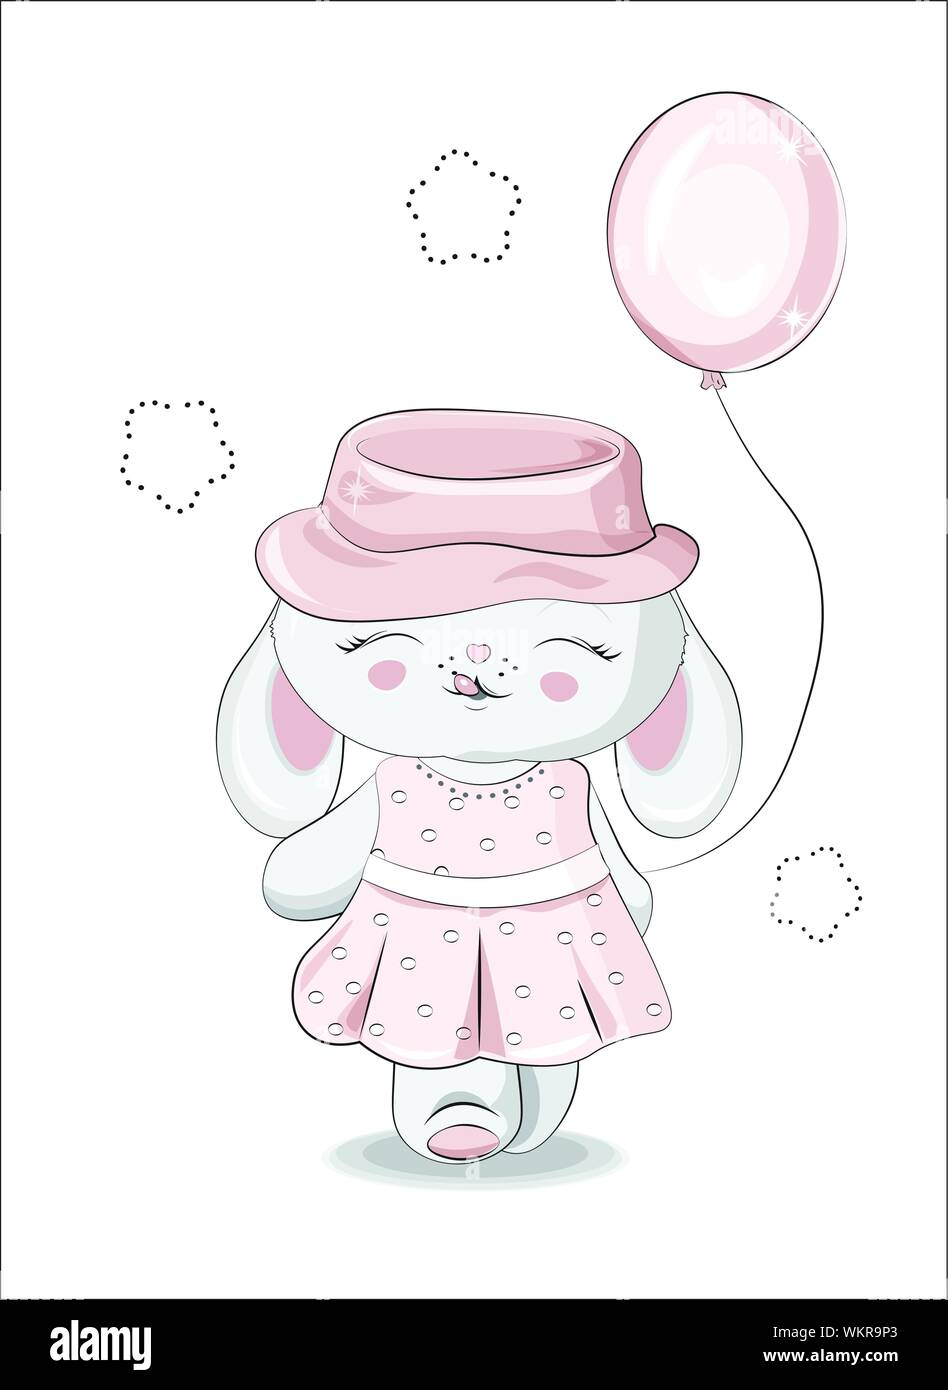 the beautiful girl honey bunny rabbit in a pink dress and a hat with a balloon can be used for t shirt print kids wear fashion design baby showe WKR9P3